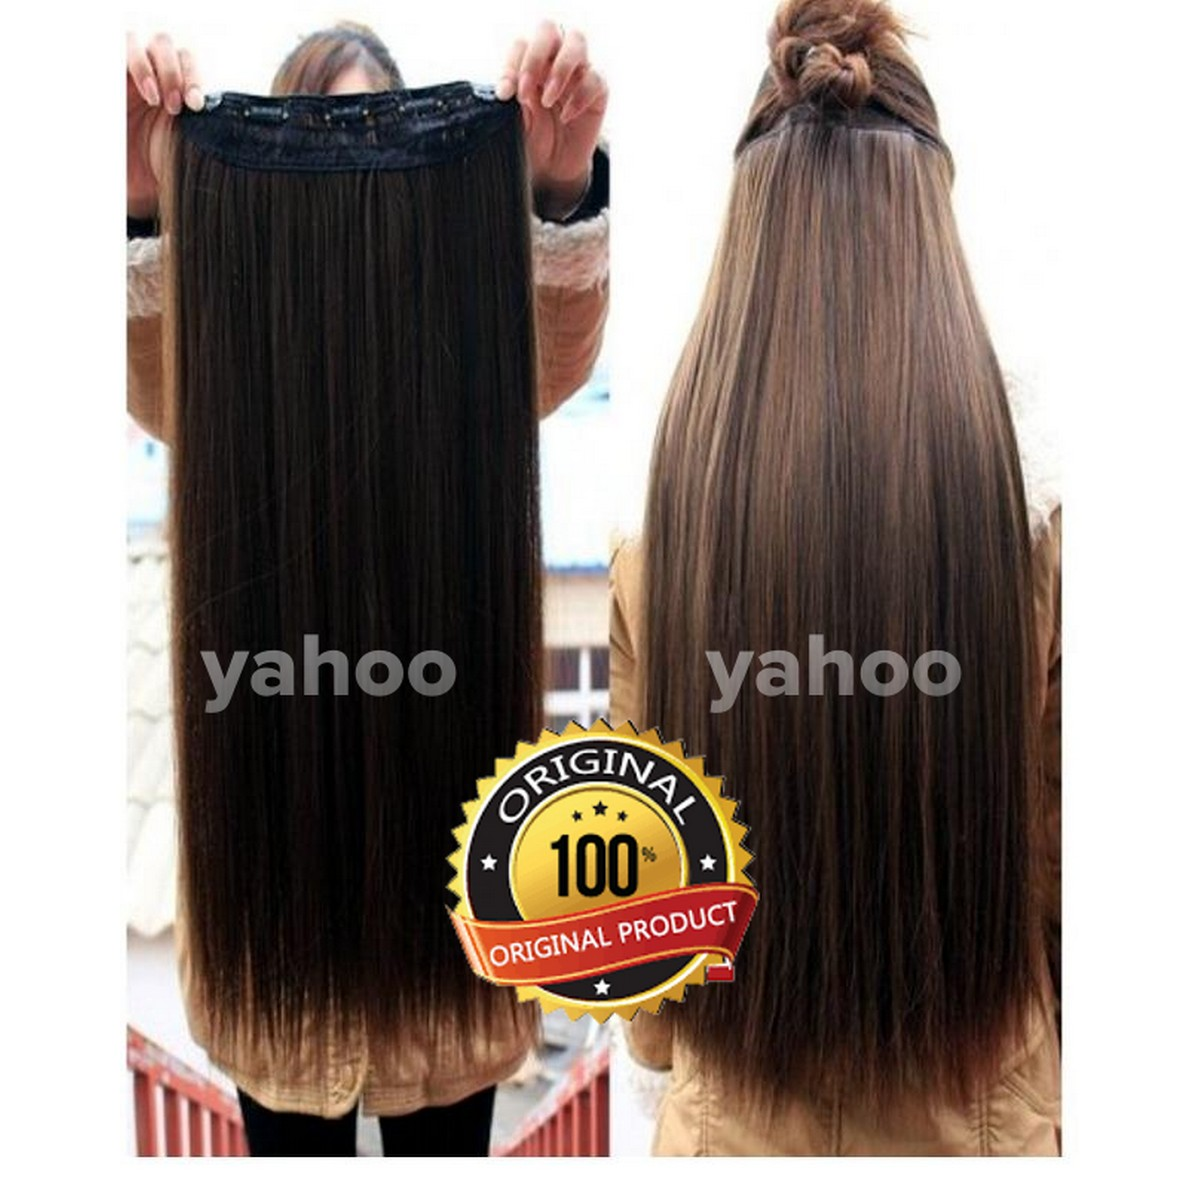 Dark Brown Wig Extension Hair Styling Very Long Hair Extension for Women With 5 Clips Strongly Attached No Hair Fall Washable Reuseable - Brown Makes hair look gorgeous Easy to use Makes hair look trendy